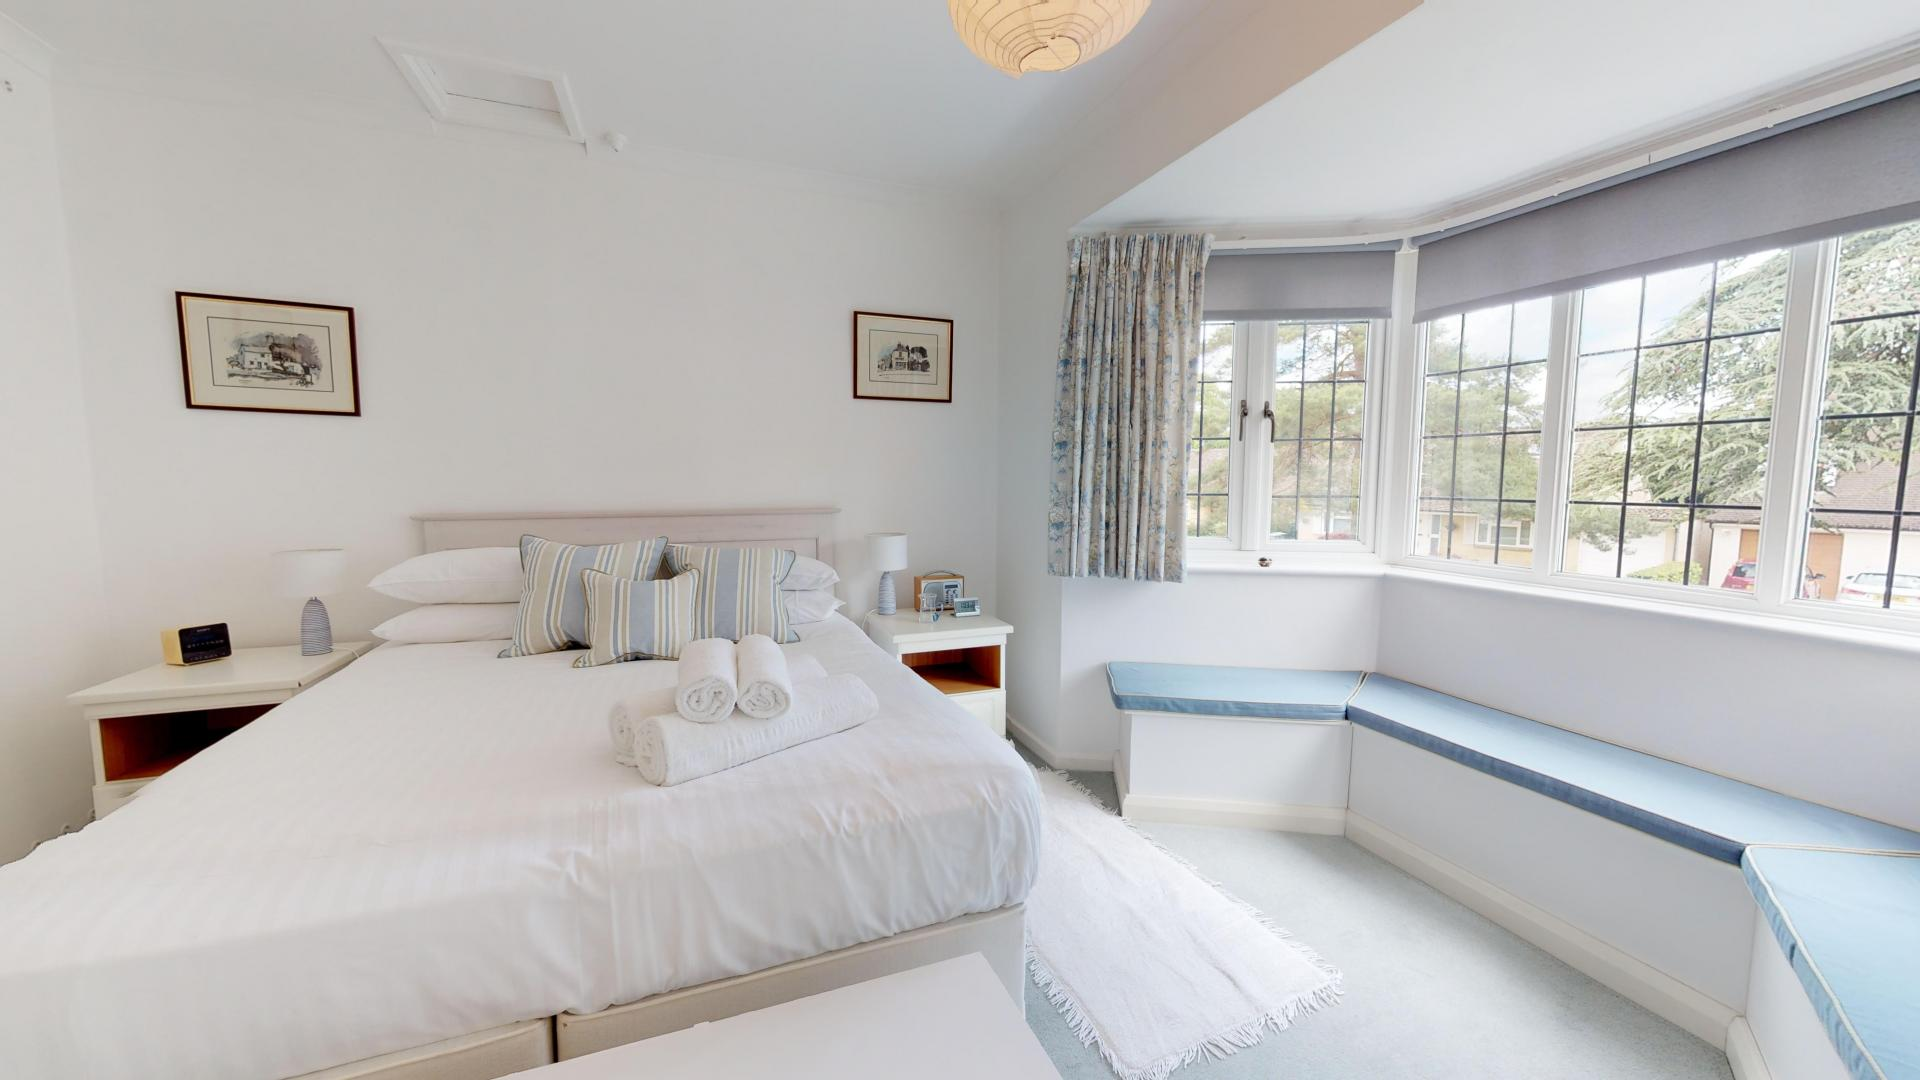 Bedroom at Blenheim Gate House, Centre, Woodstock - Citybase Apartments